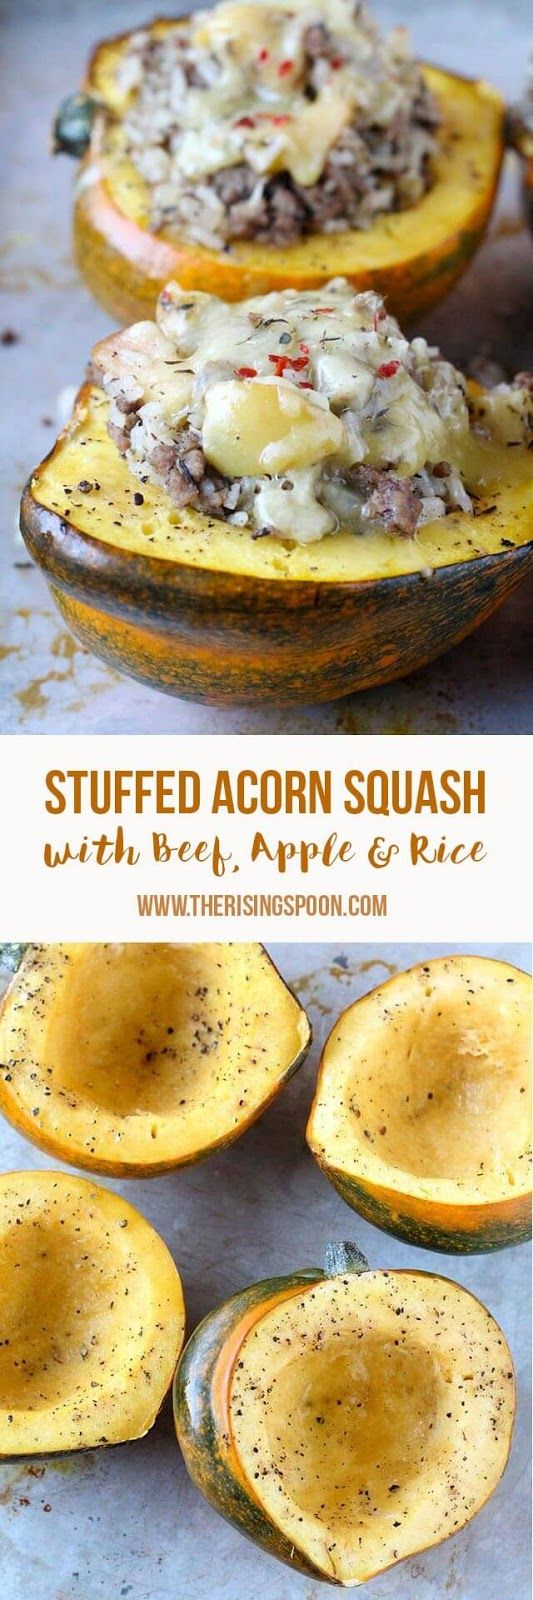 An easy recipe for baked acorn squash that's stuffed with a savory, slightly sweet & buttery filling of ground beef, apple, and rice. Fix this in about 40-45 minutes for an easy and healthy fall dinner recipe. This is a great meal to make when you're in a ground beef rut and need some fresh ideas using seasonal fall and winter ingredients. | Real Food Recipes | Dinner Recipes |